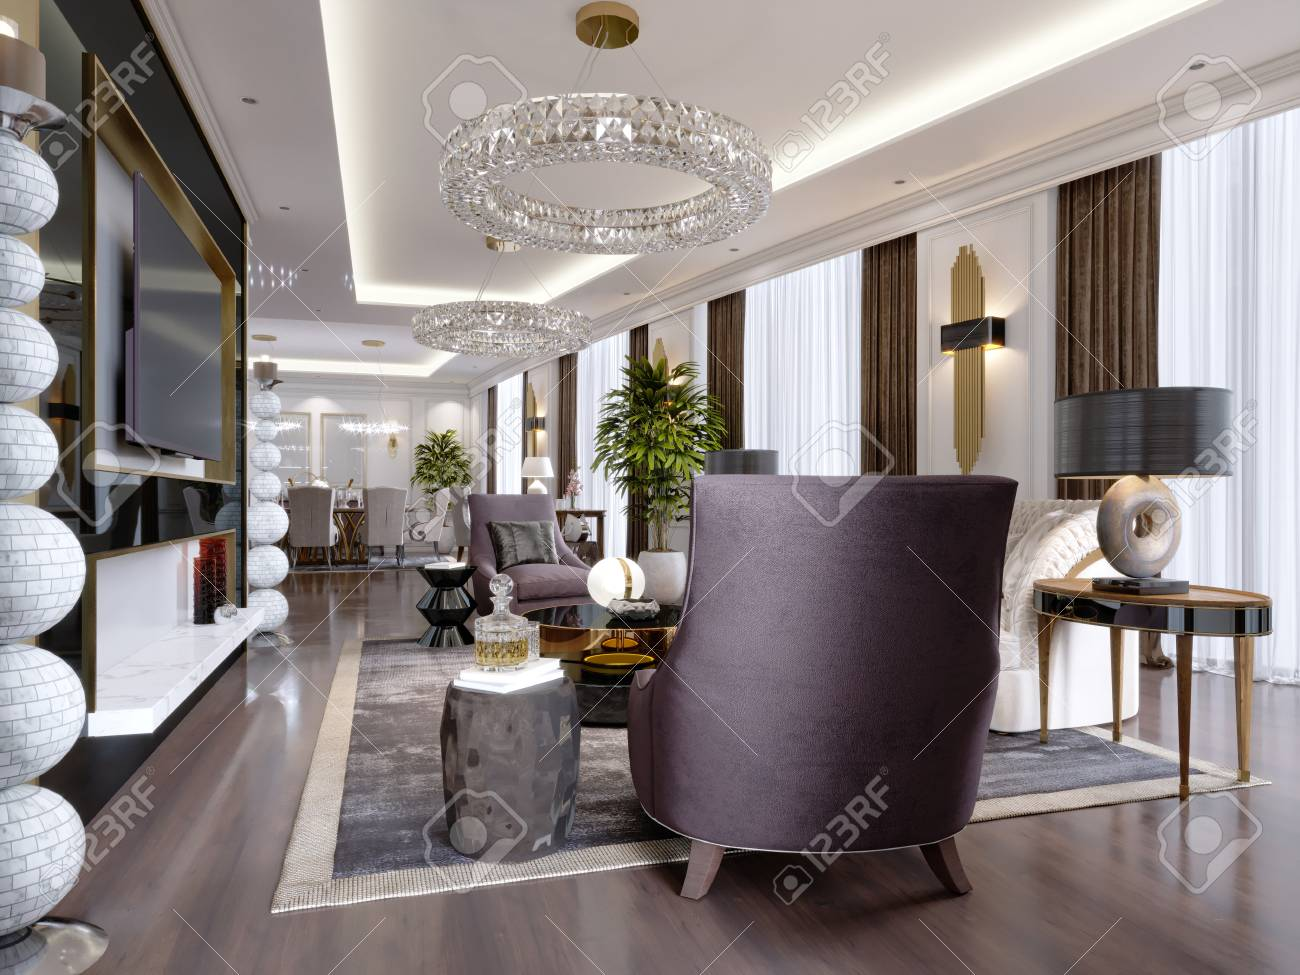 A modern classic style hotel room with a lounge and dining area and designer